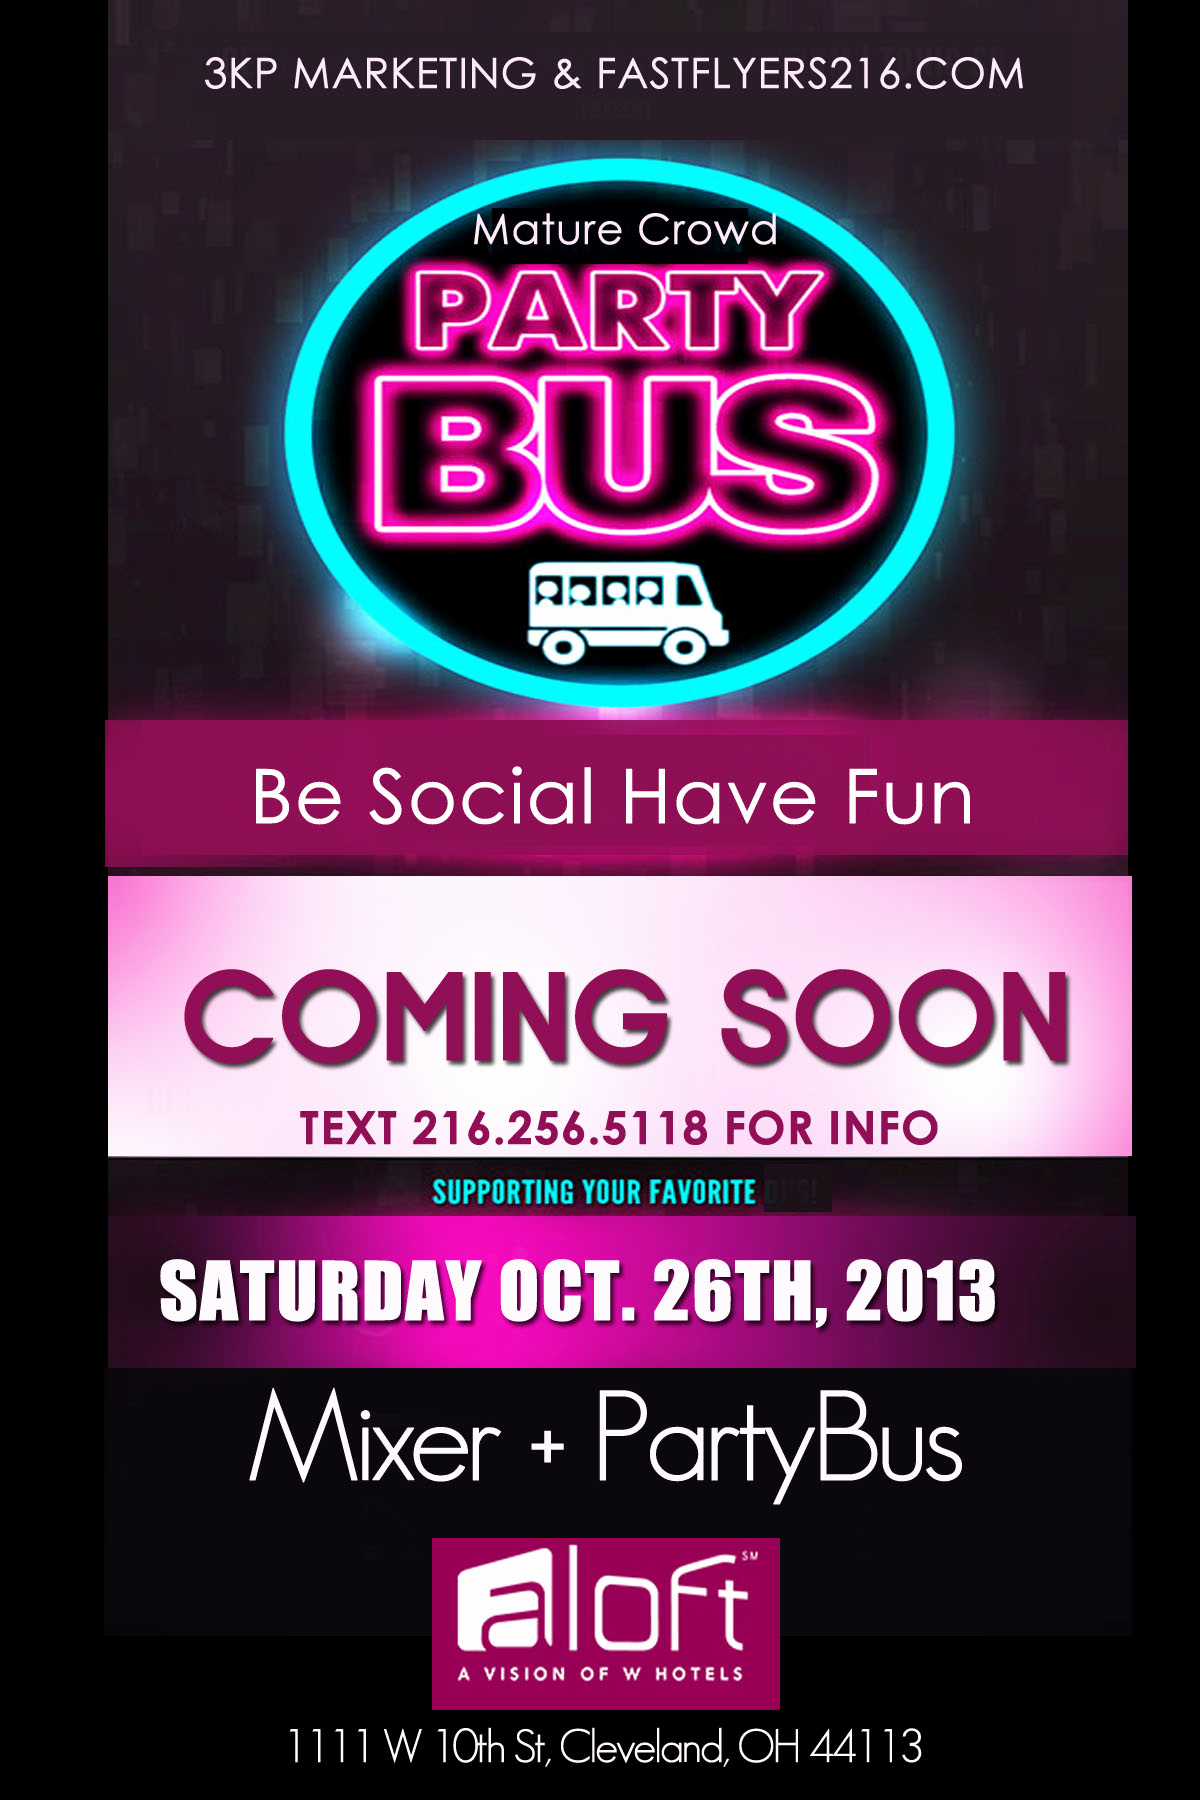 Party Bus Invitation Wording Unique Mixer Party Bus Part Of Rock the Vote Week events